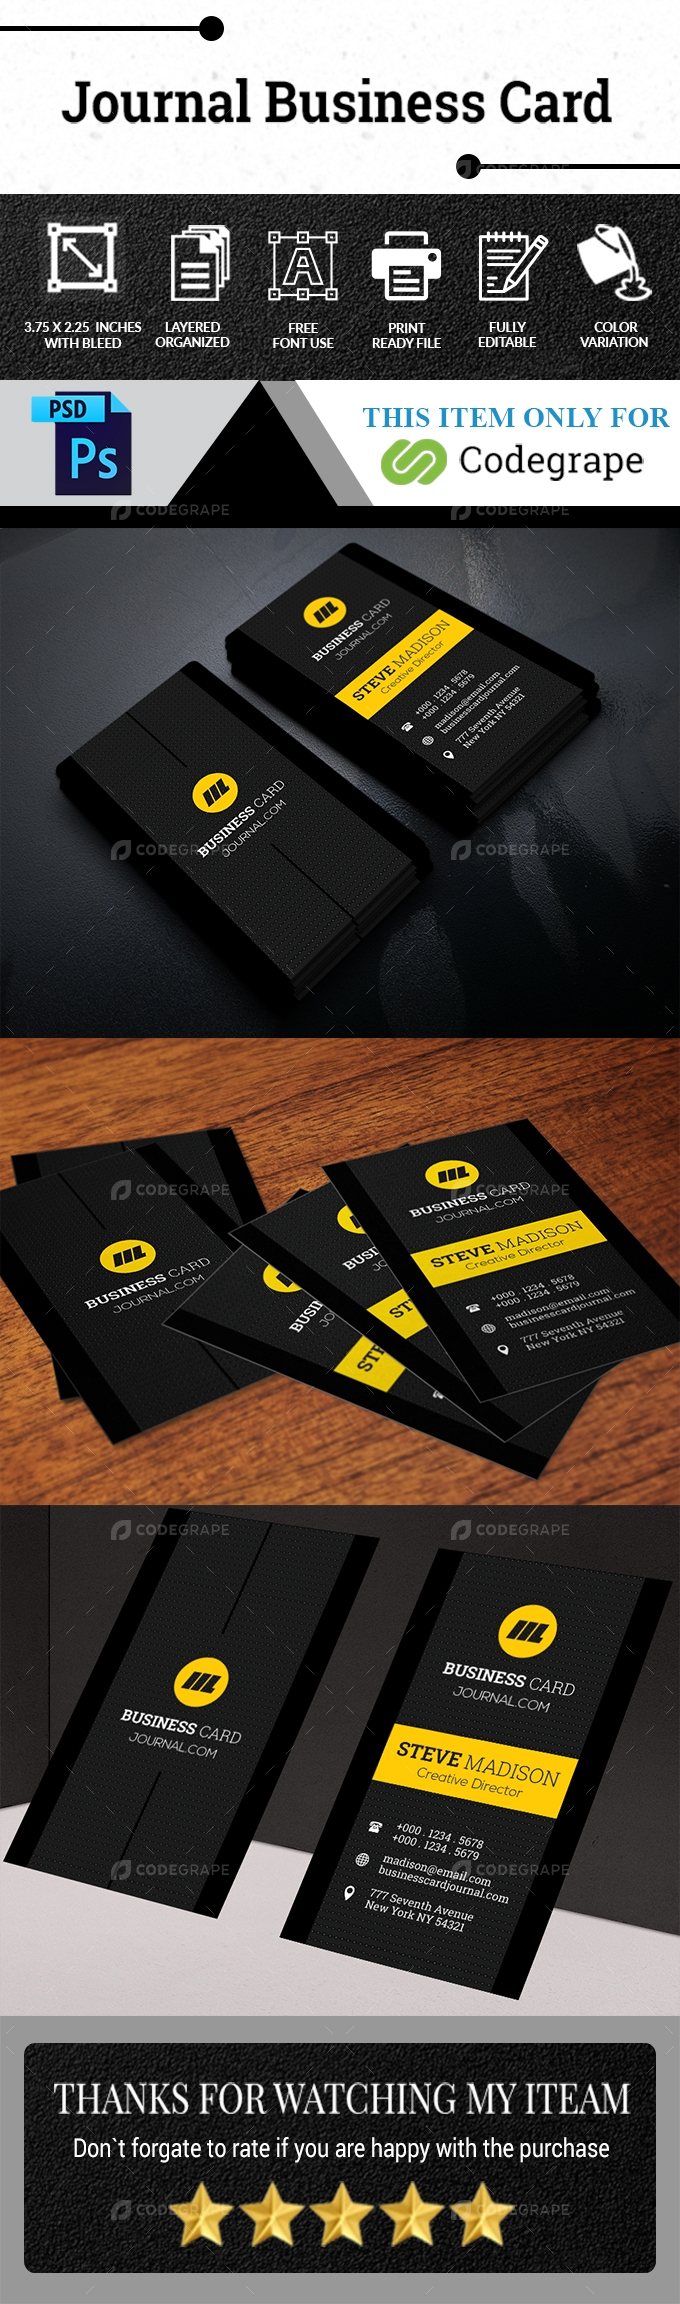 Journal Business Card